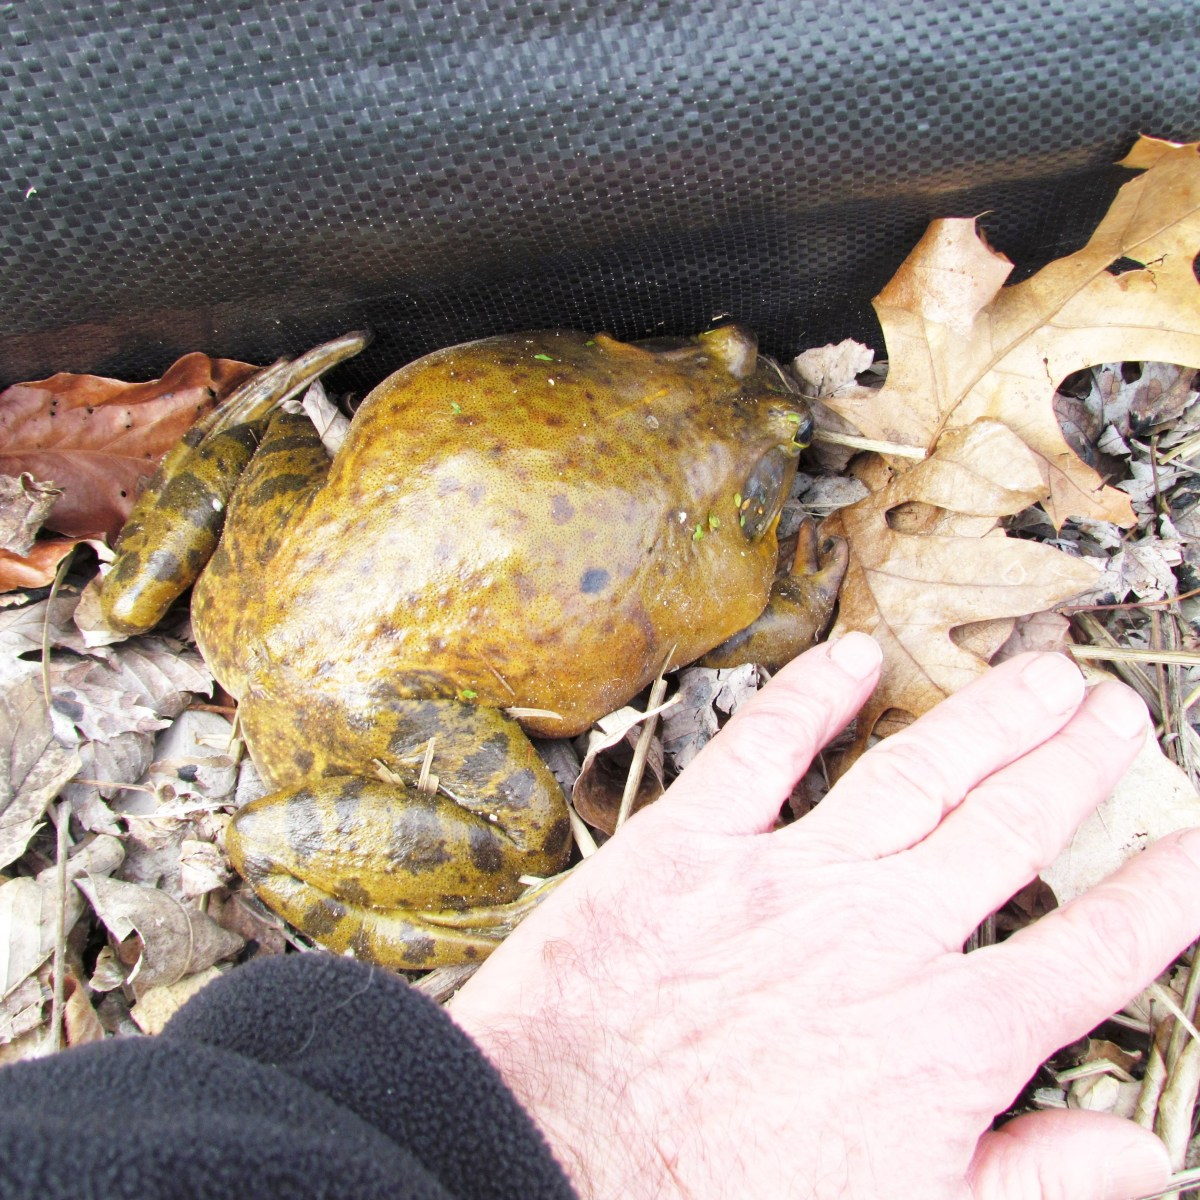 A human hand next to a bullfrog to show the size, they are about the same size.